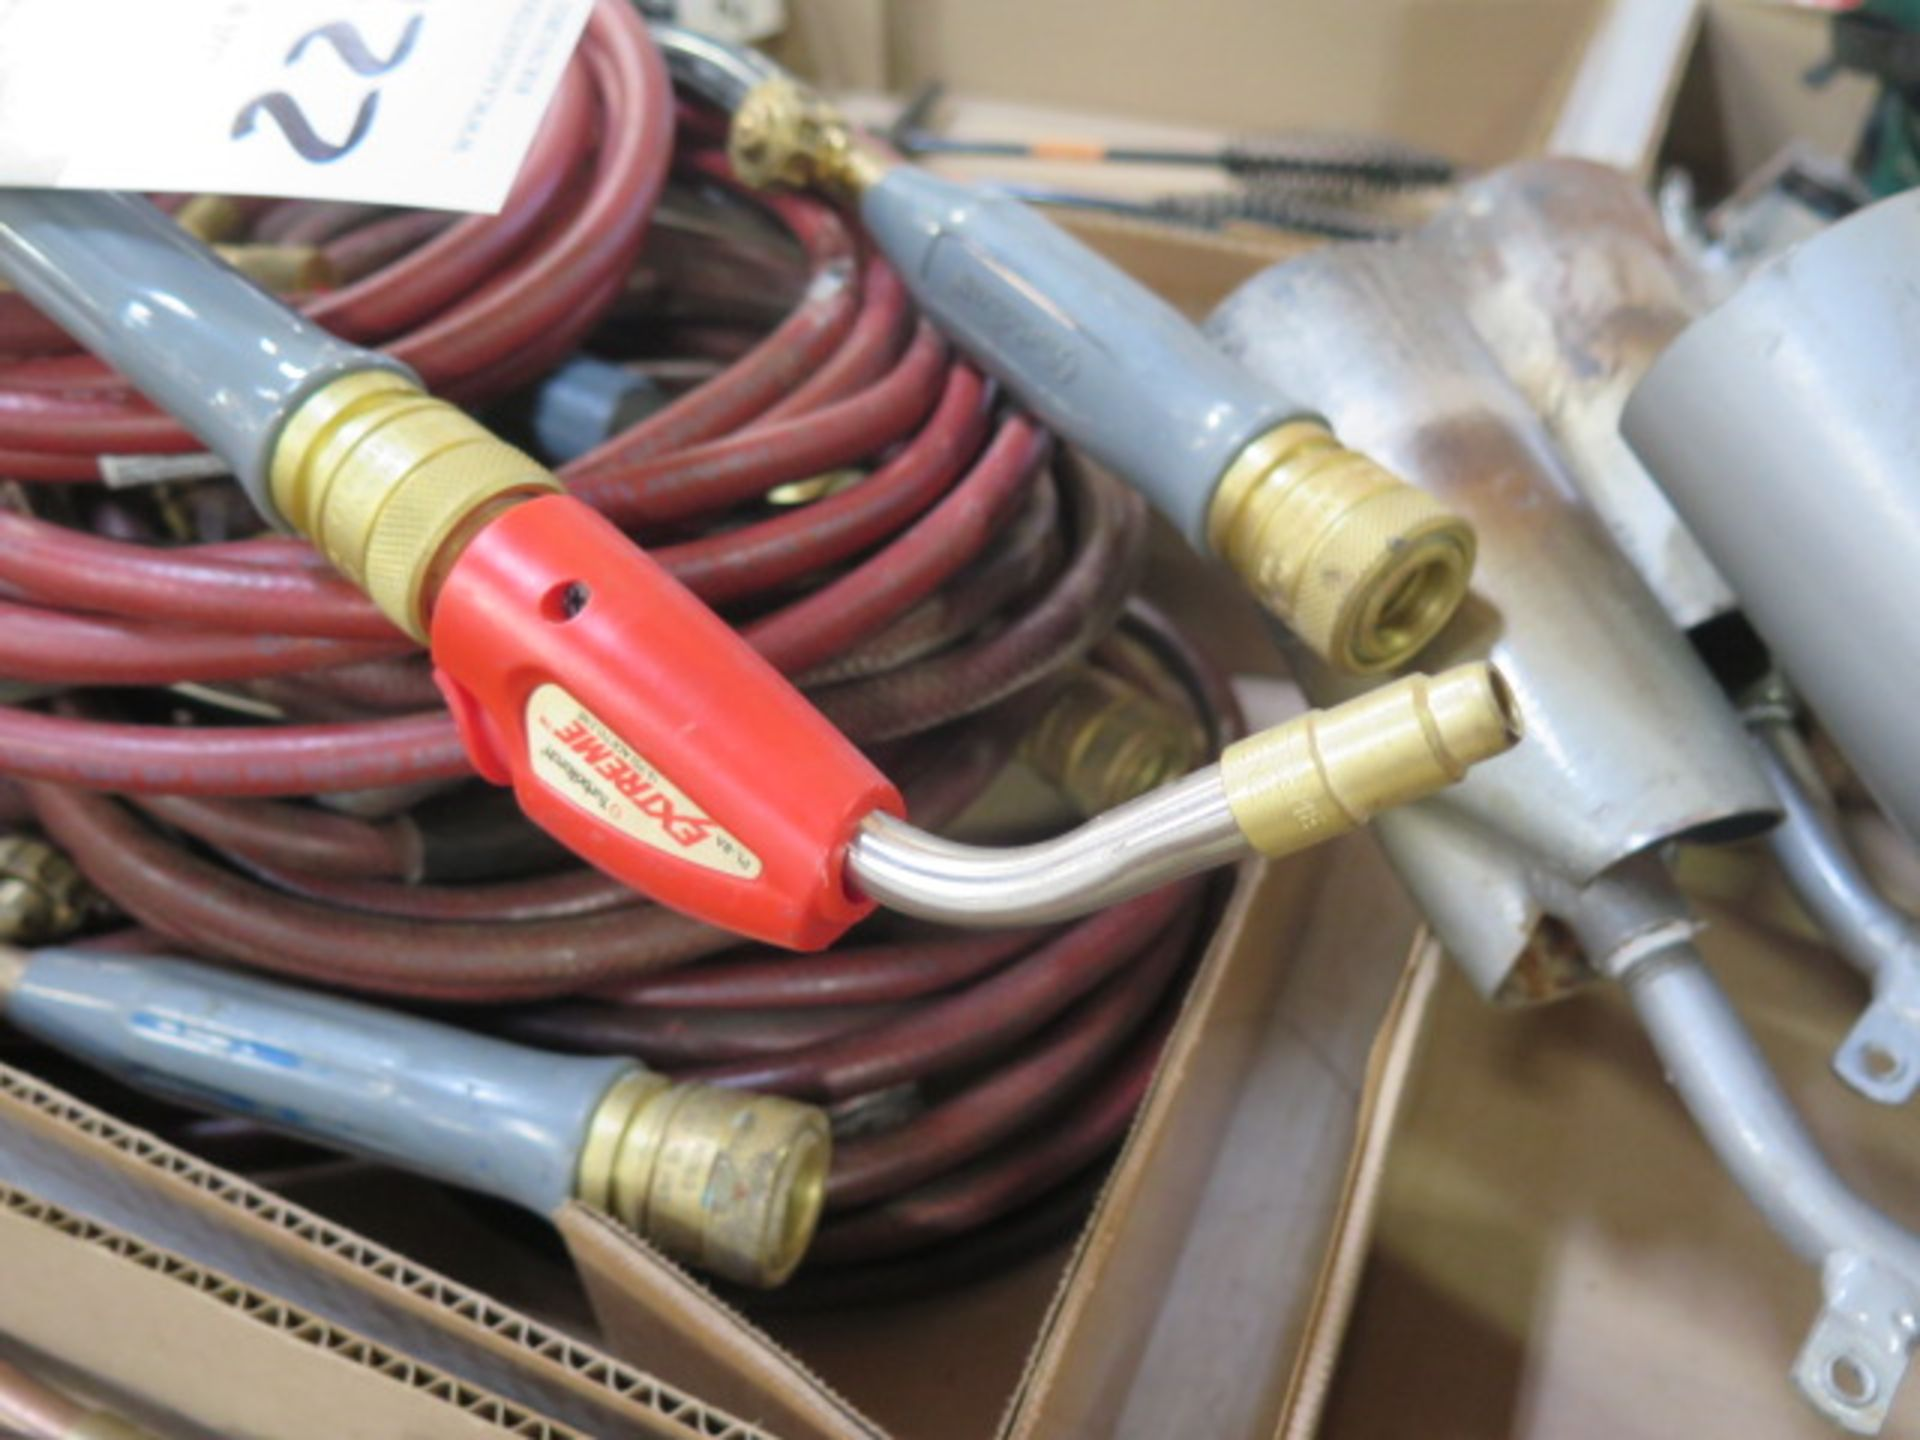 Heating Torches (SOLD AS-IS - NO WARRANTY) - Image 5 of 5